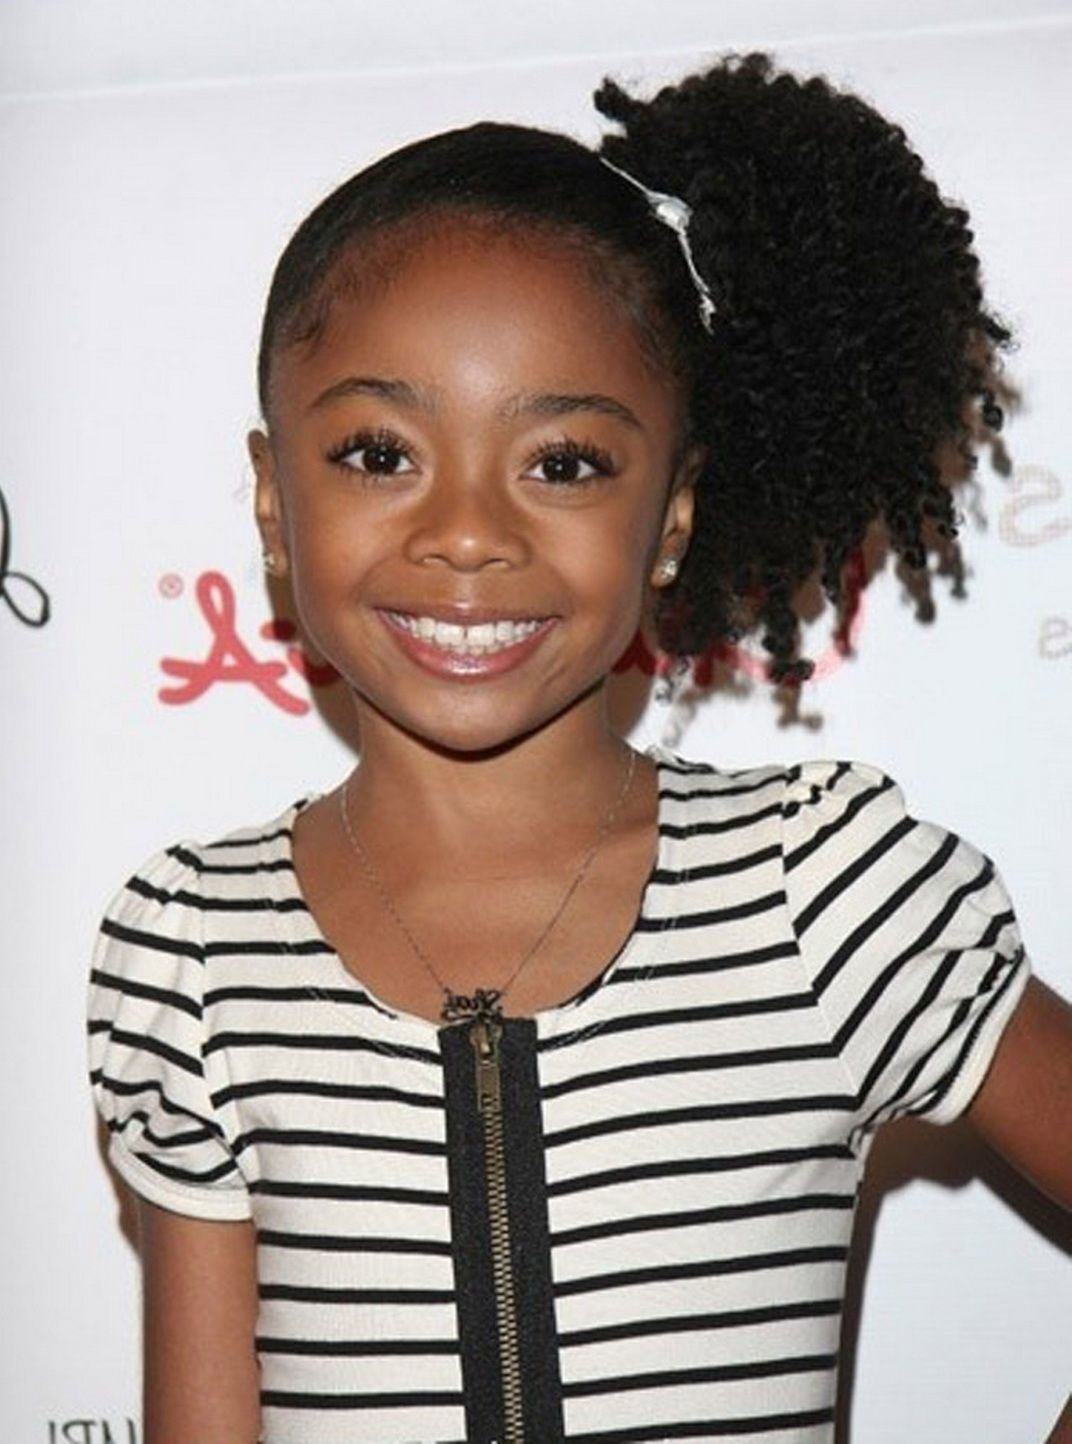 The Best Black Kids Braids Hairstyles For Girls Hairstyle For Pictures